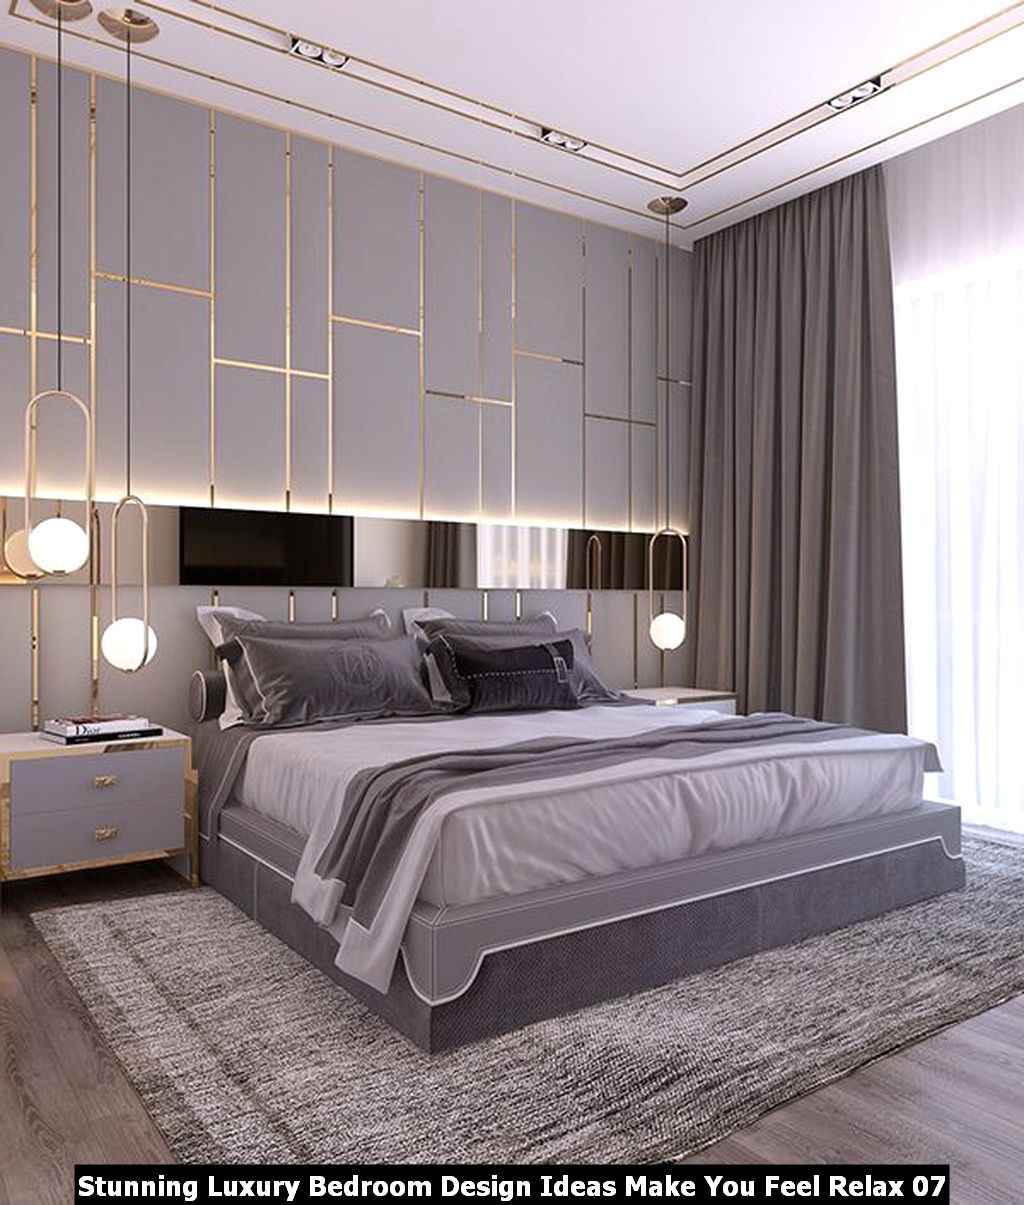 Stunning Luxury Bedroom Design Ideas Make You Feel Relax 07